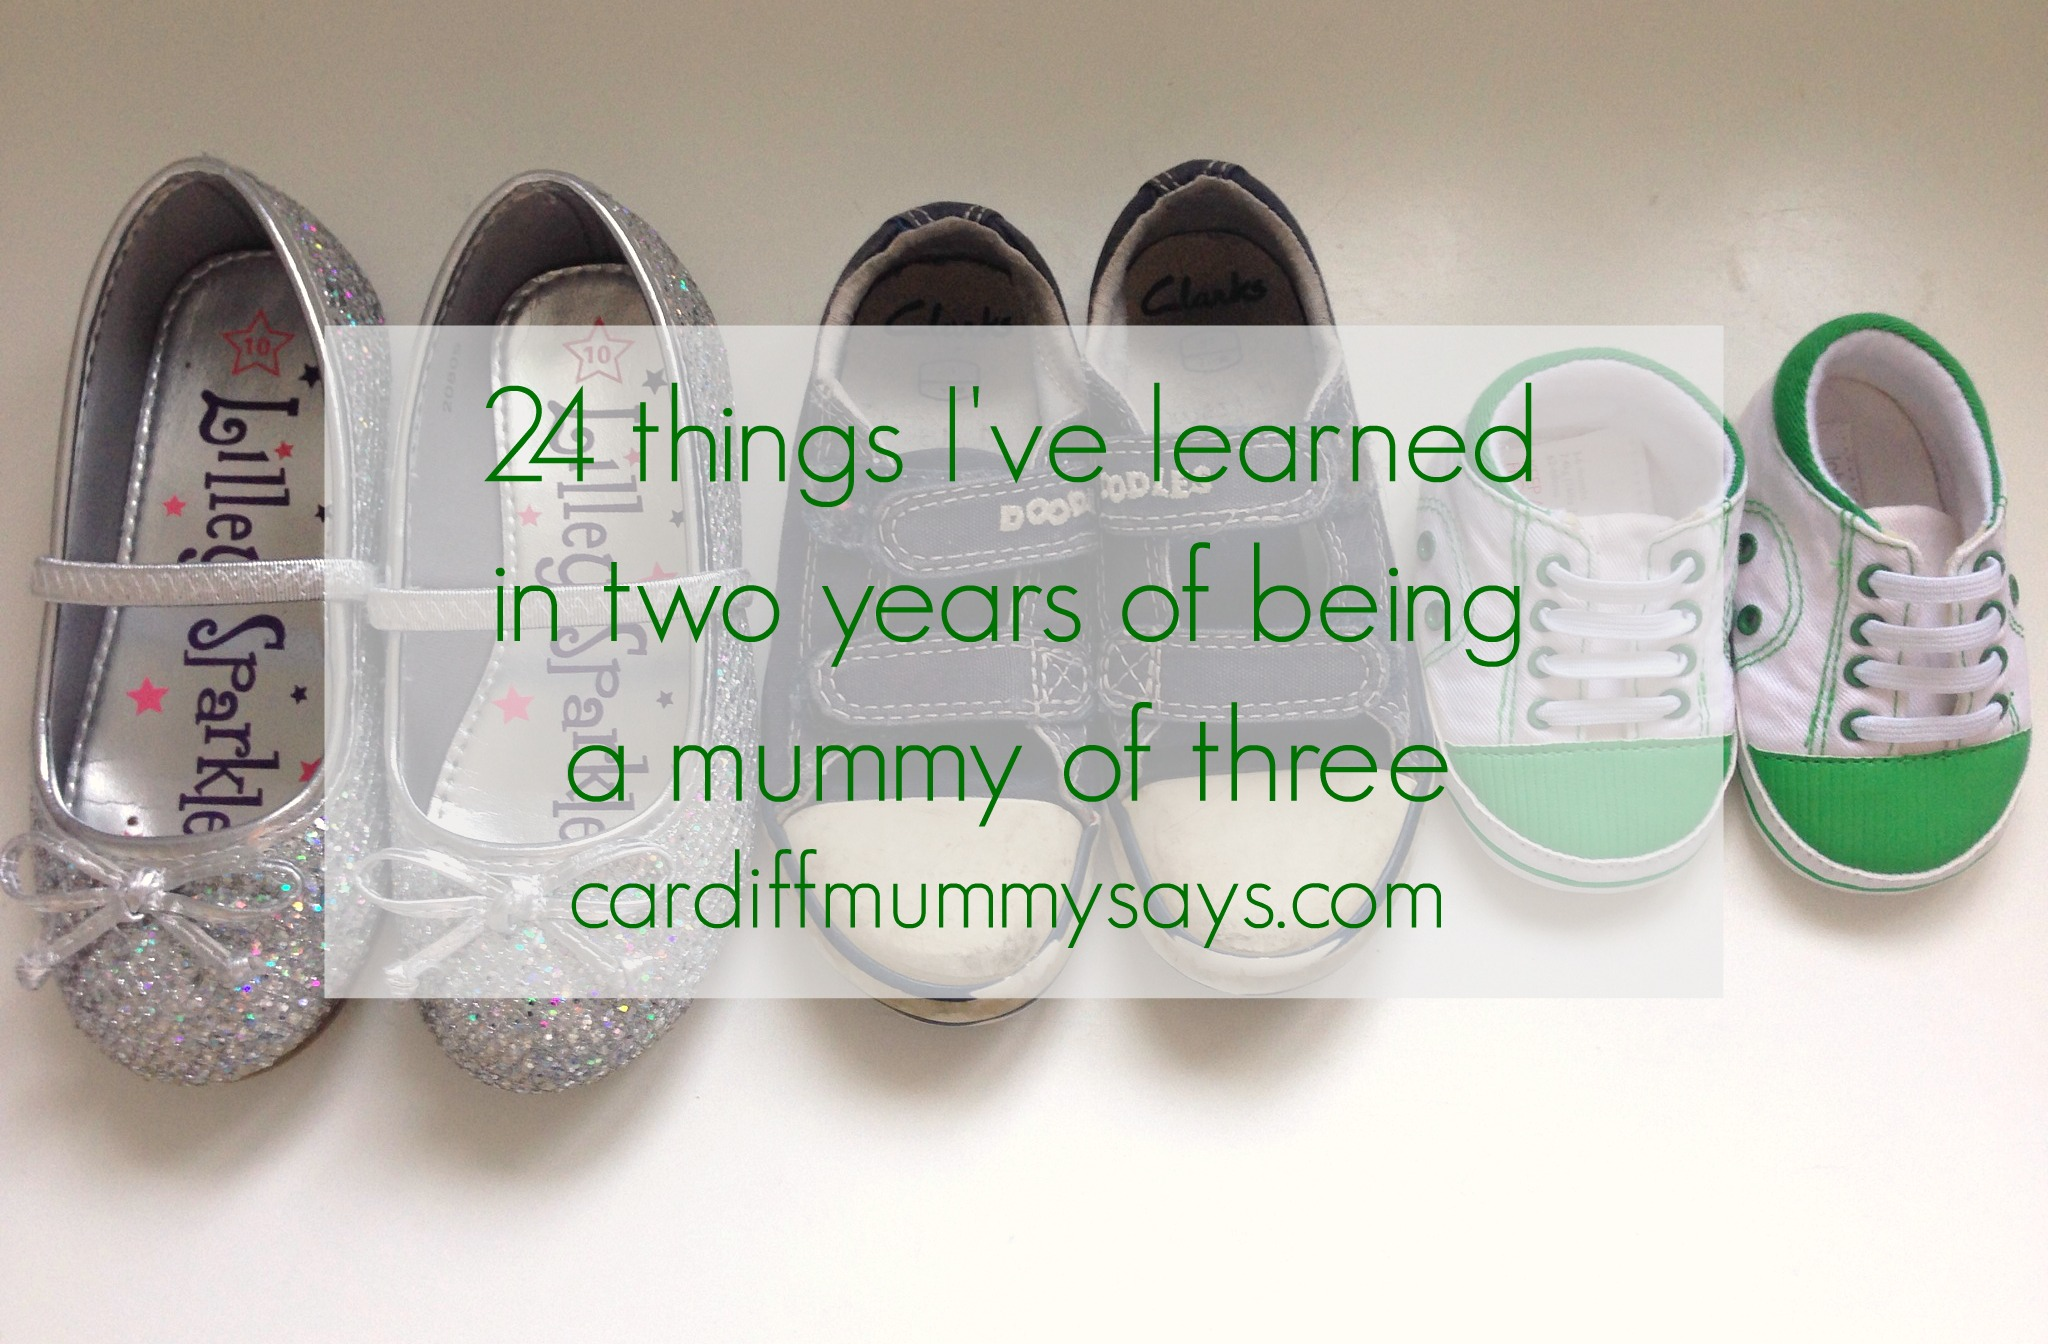 24 things I've learned in two years of being a mummy of three